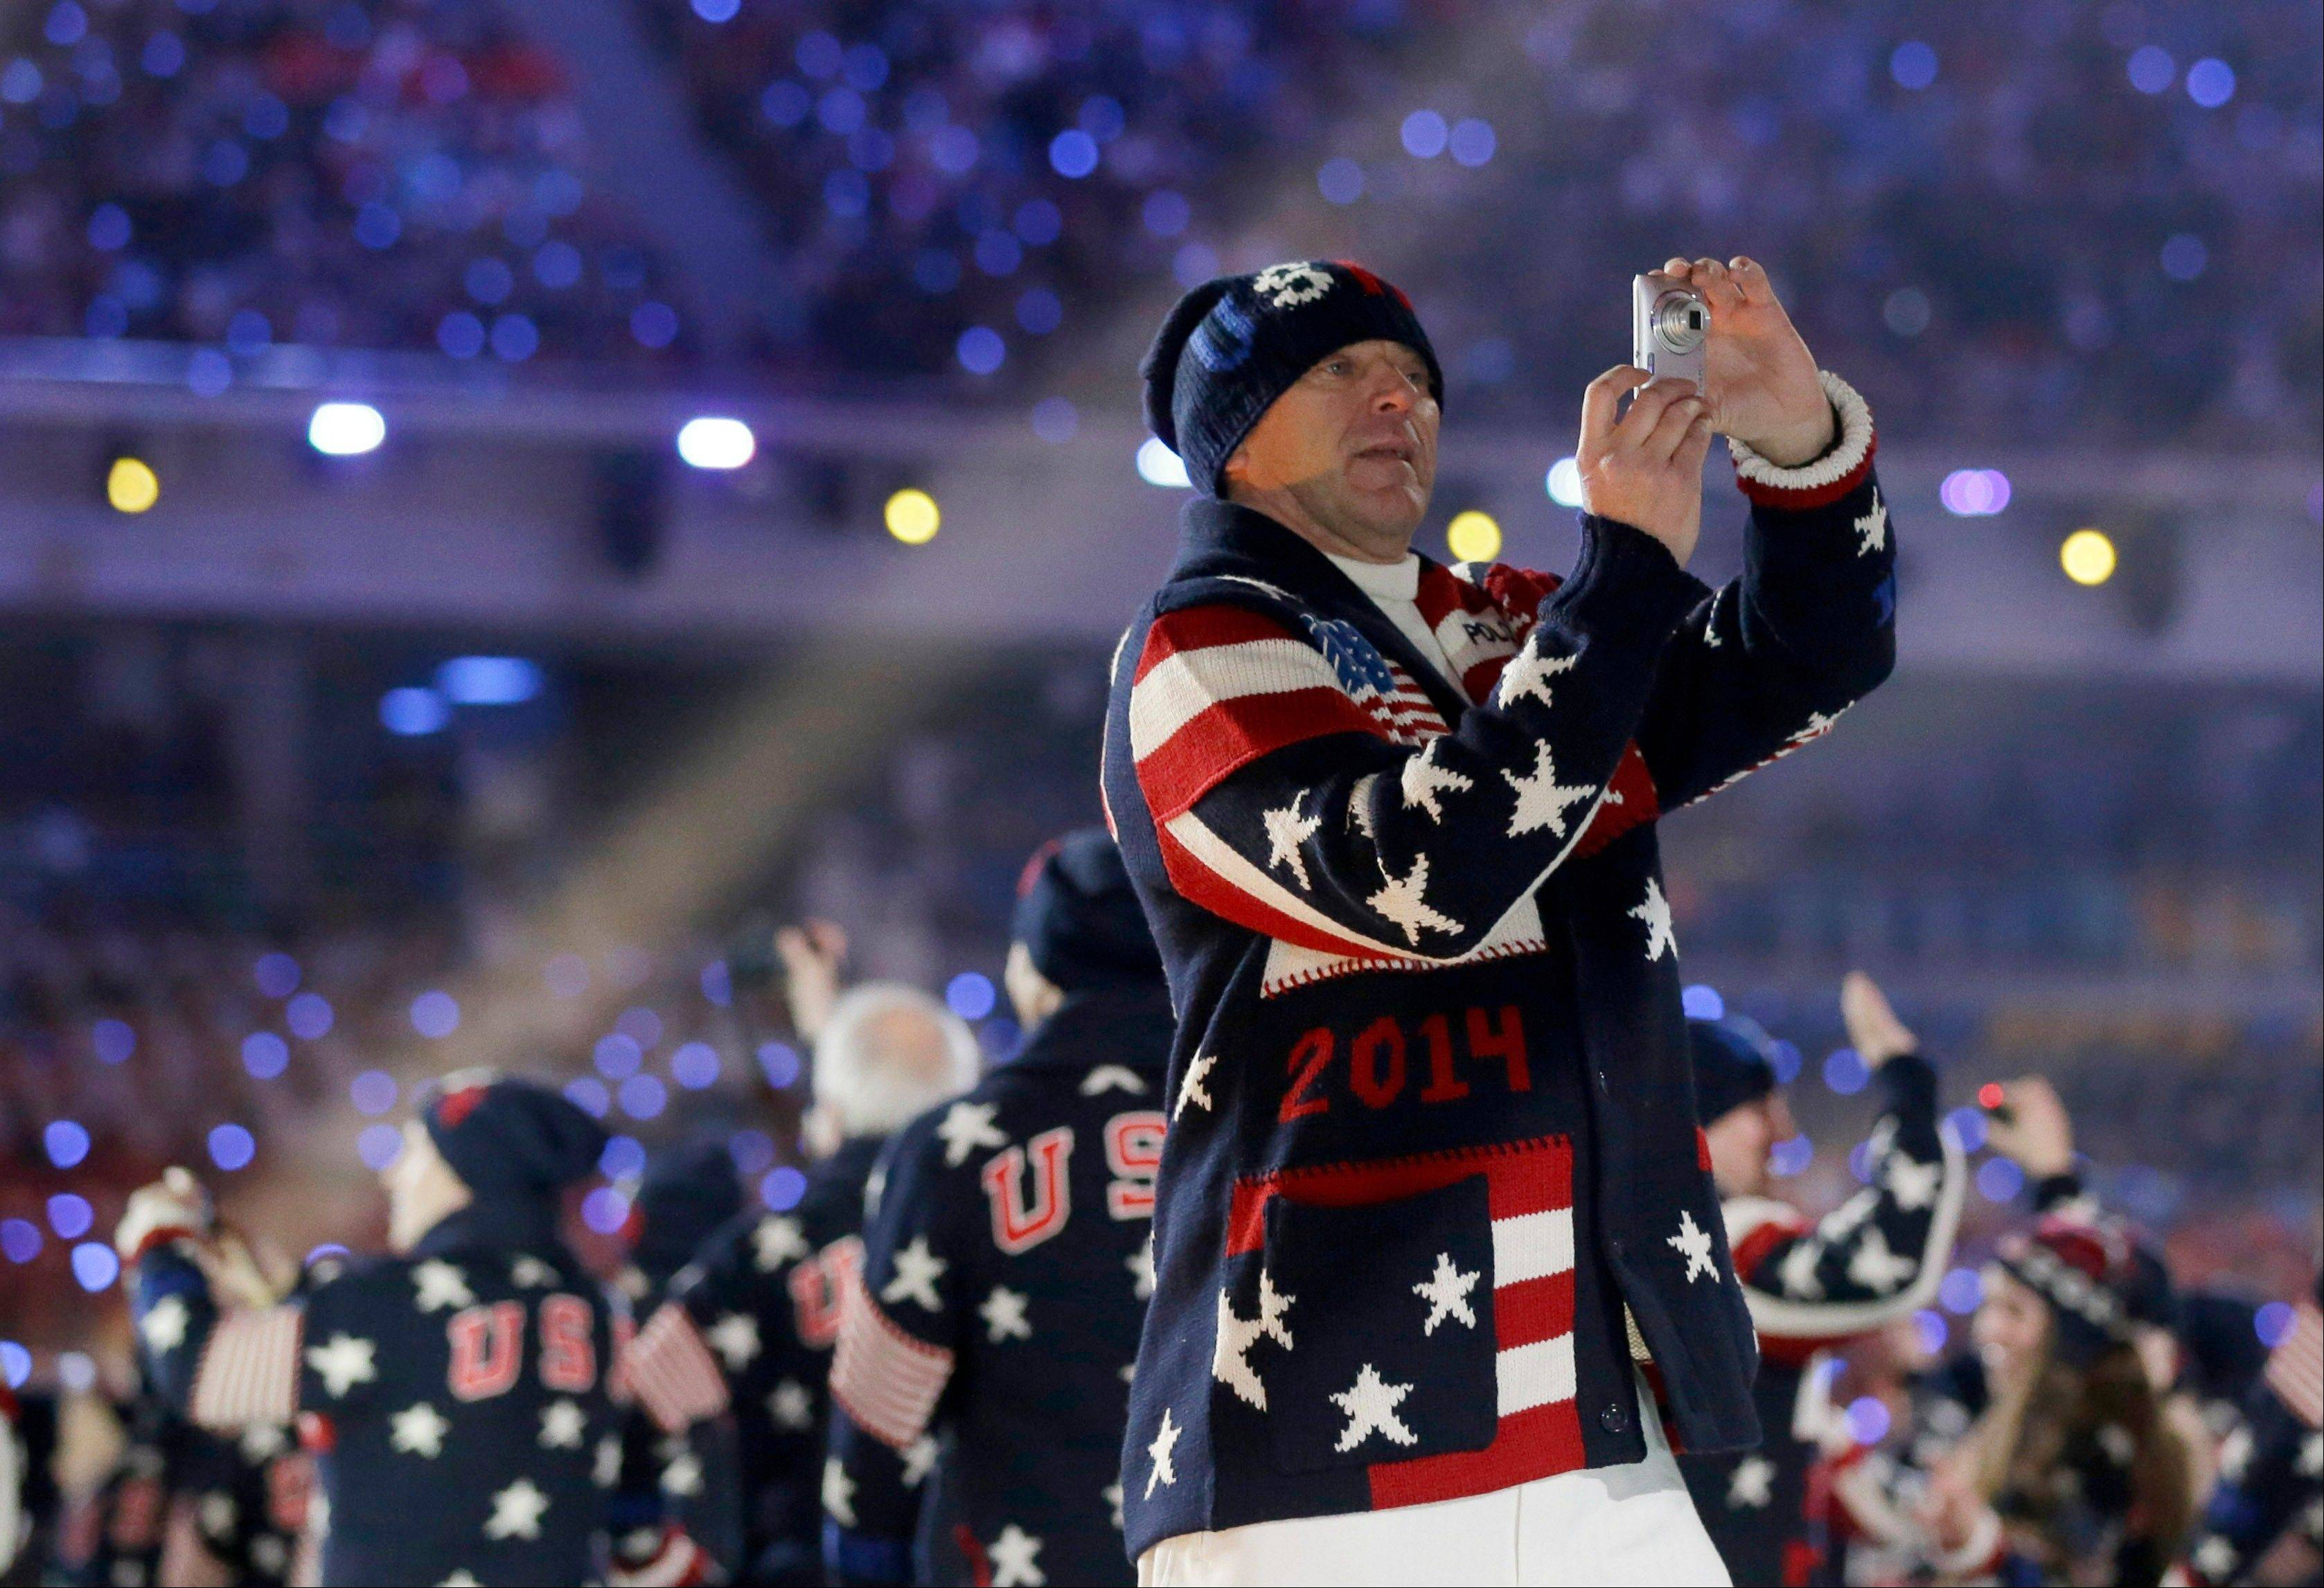 A member of the United States team takes pictures as he enters the stadium during the opening ceremony.